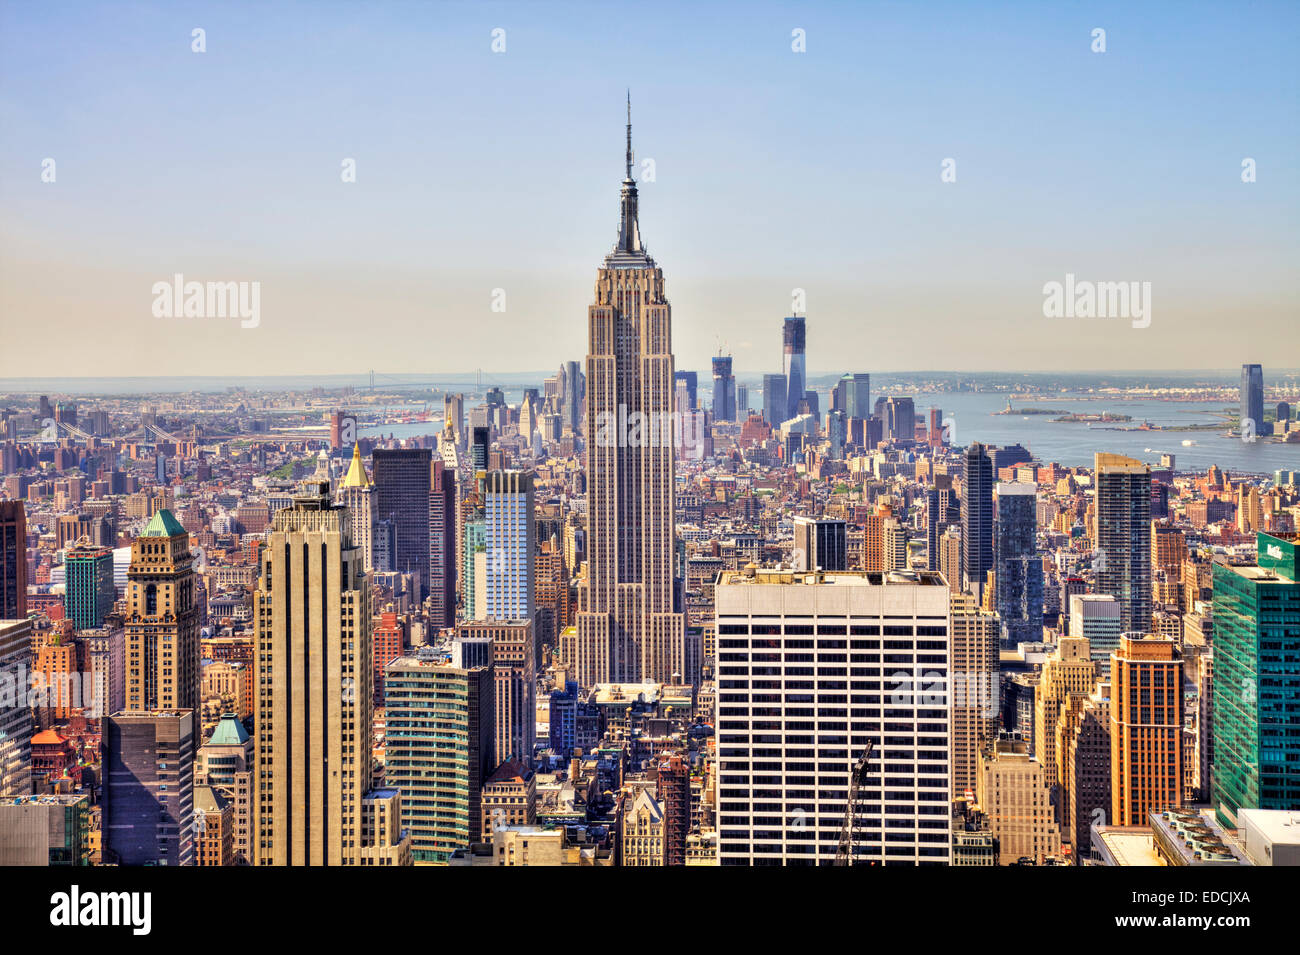 Empire State Building Free Stock